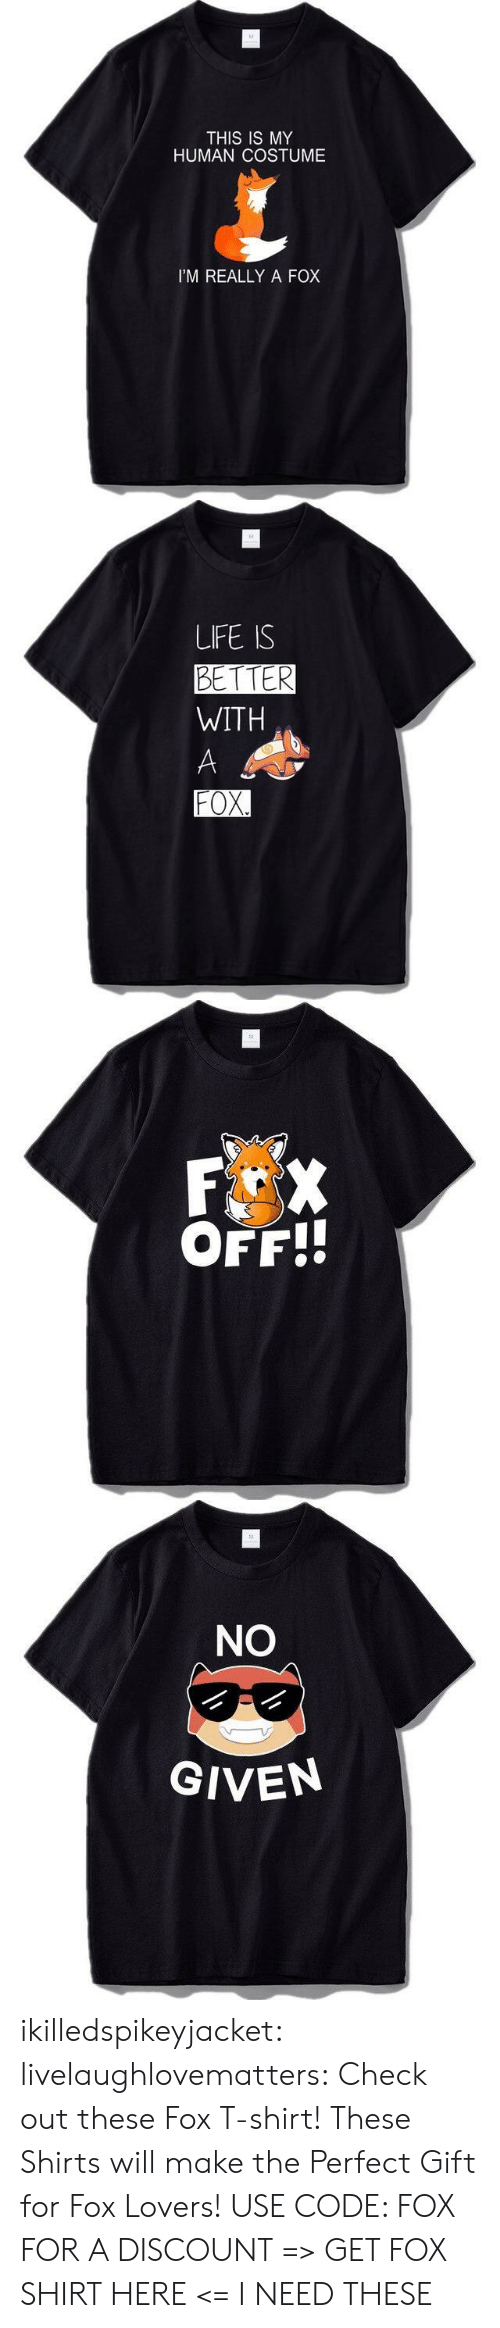 Life, Target, and Tumblr: M  THIS IS MY  HUMAN COSTUME  I'M REALLY A FOX   M  LIFE IS  BETTER  WITH  A  FOX.   M  F X  OFF!!   M  NO  GIVEN ikilledspikeyjacket:  livelaughlovematters:  Check out these Fox T-shirt! These Shirts will make the Perfect Gift for Fox Lovers! USE CODE: FOX FOR A DISCOUNT => GET FOX SHIRT HERE <=  I NEED THESE